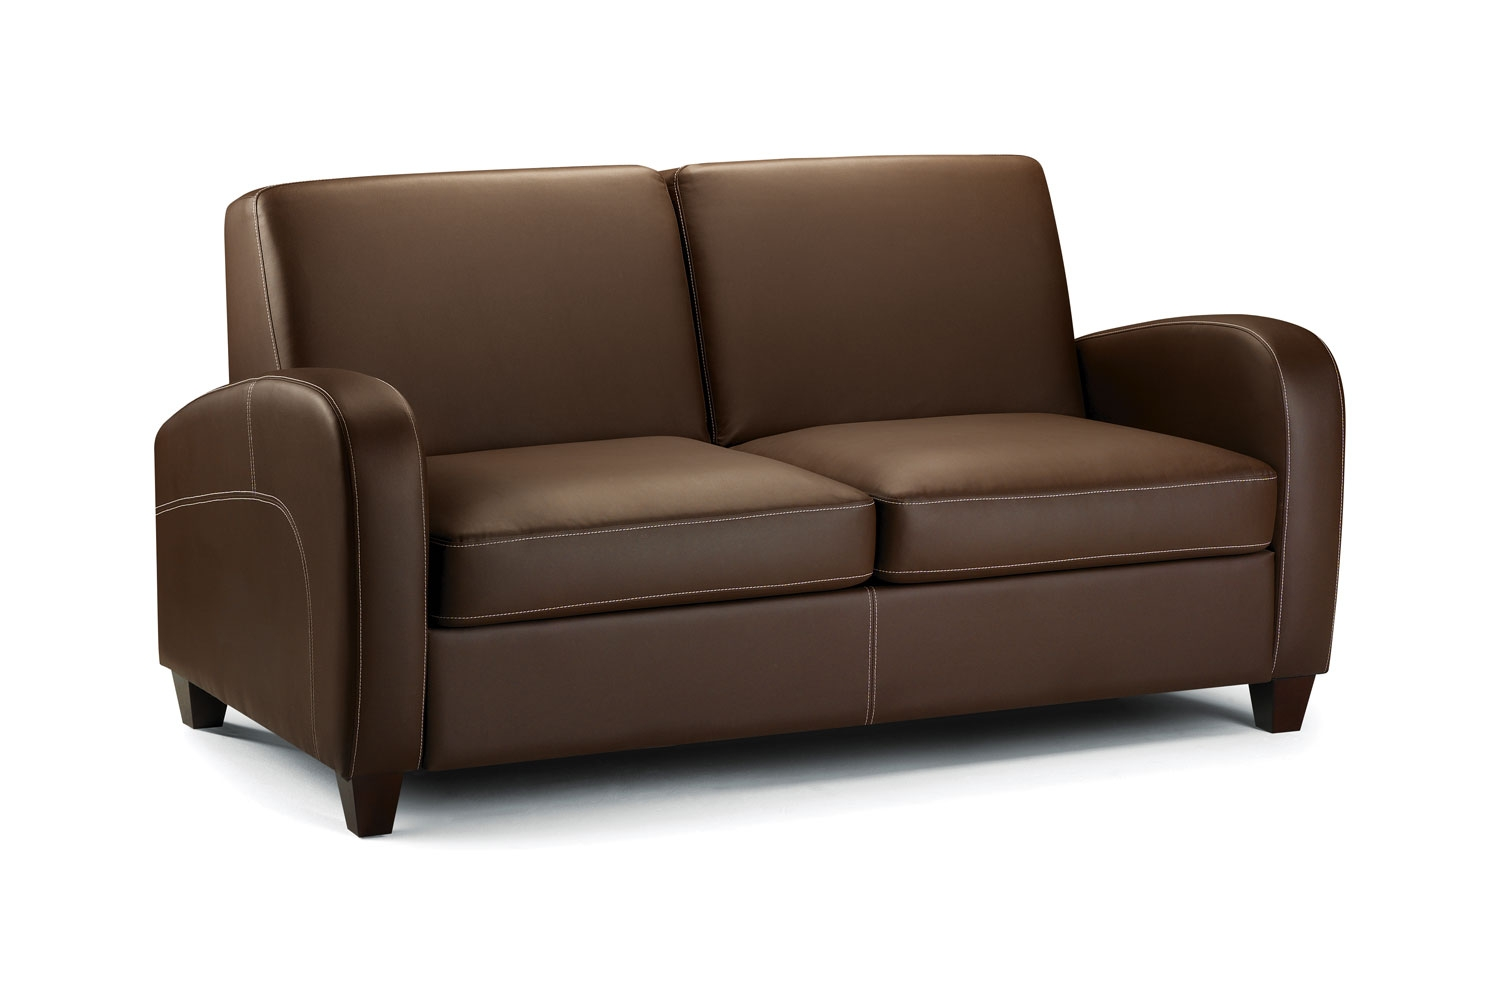 Chestnut sofa bed furniture store for Sofa bed store